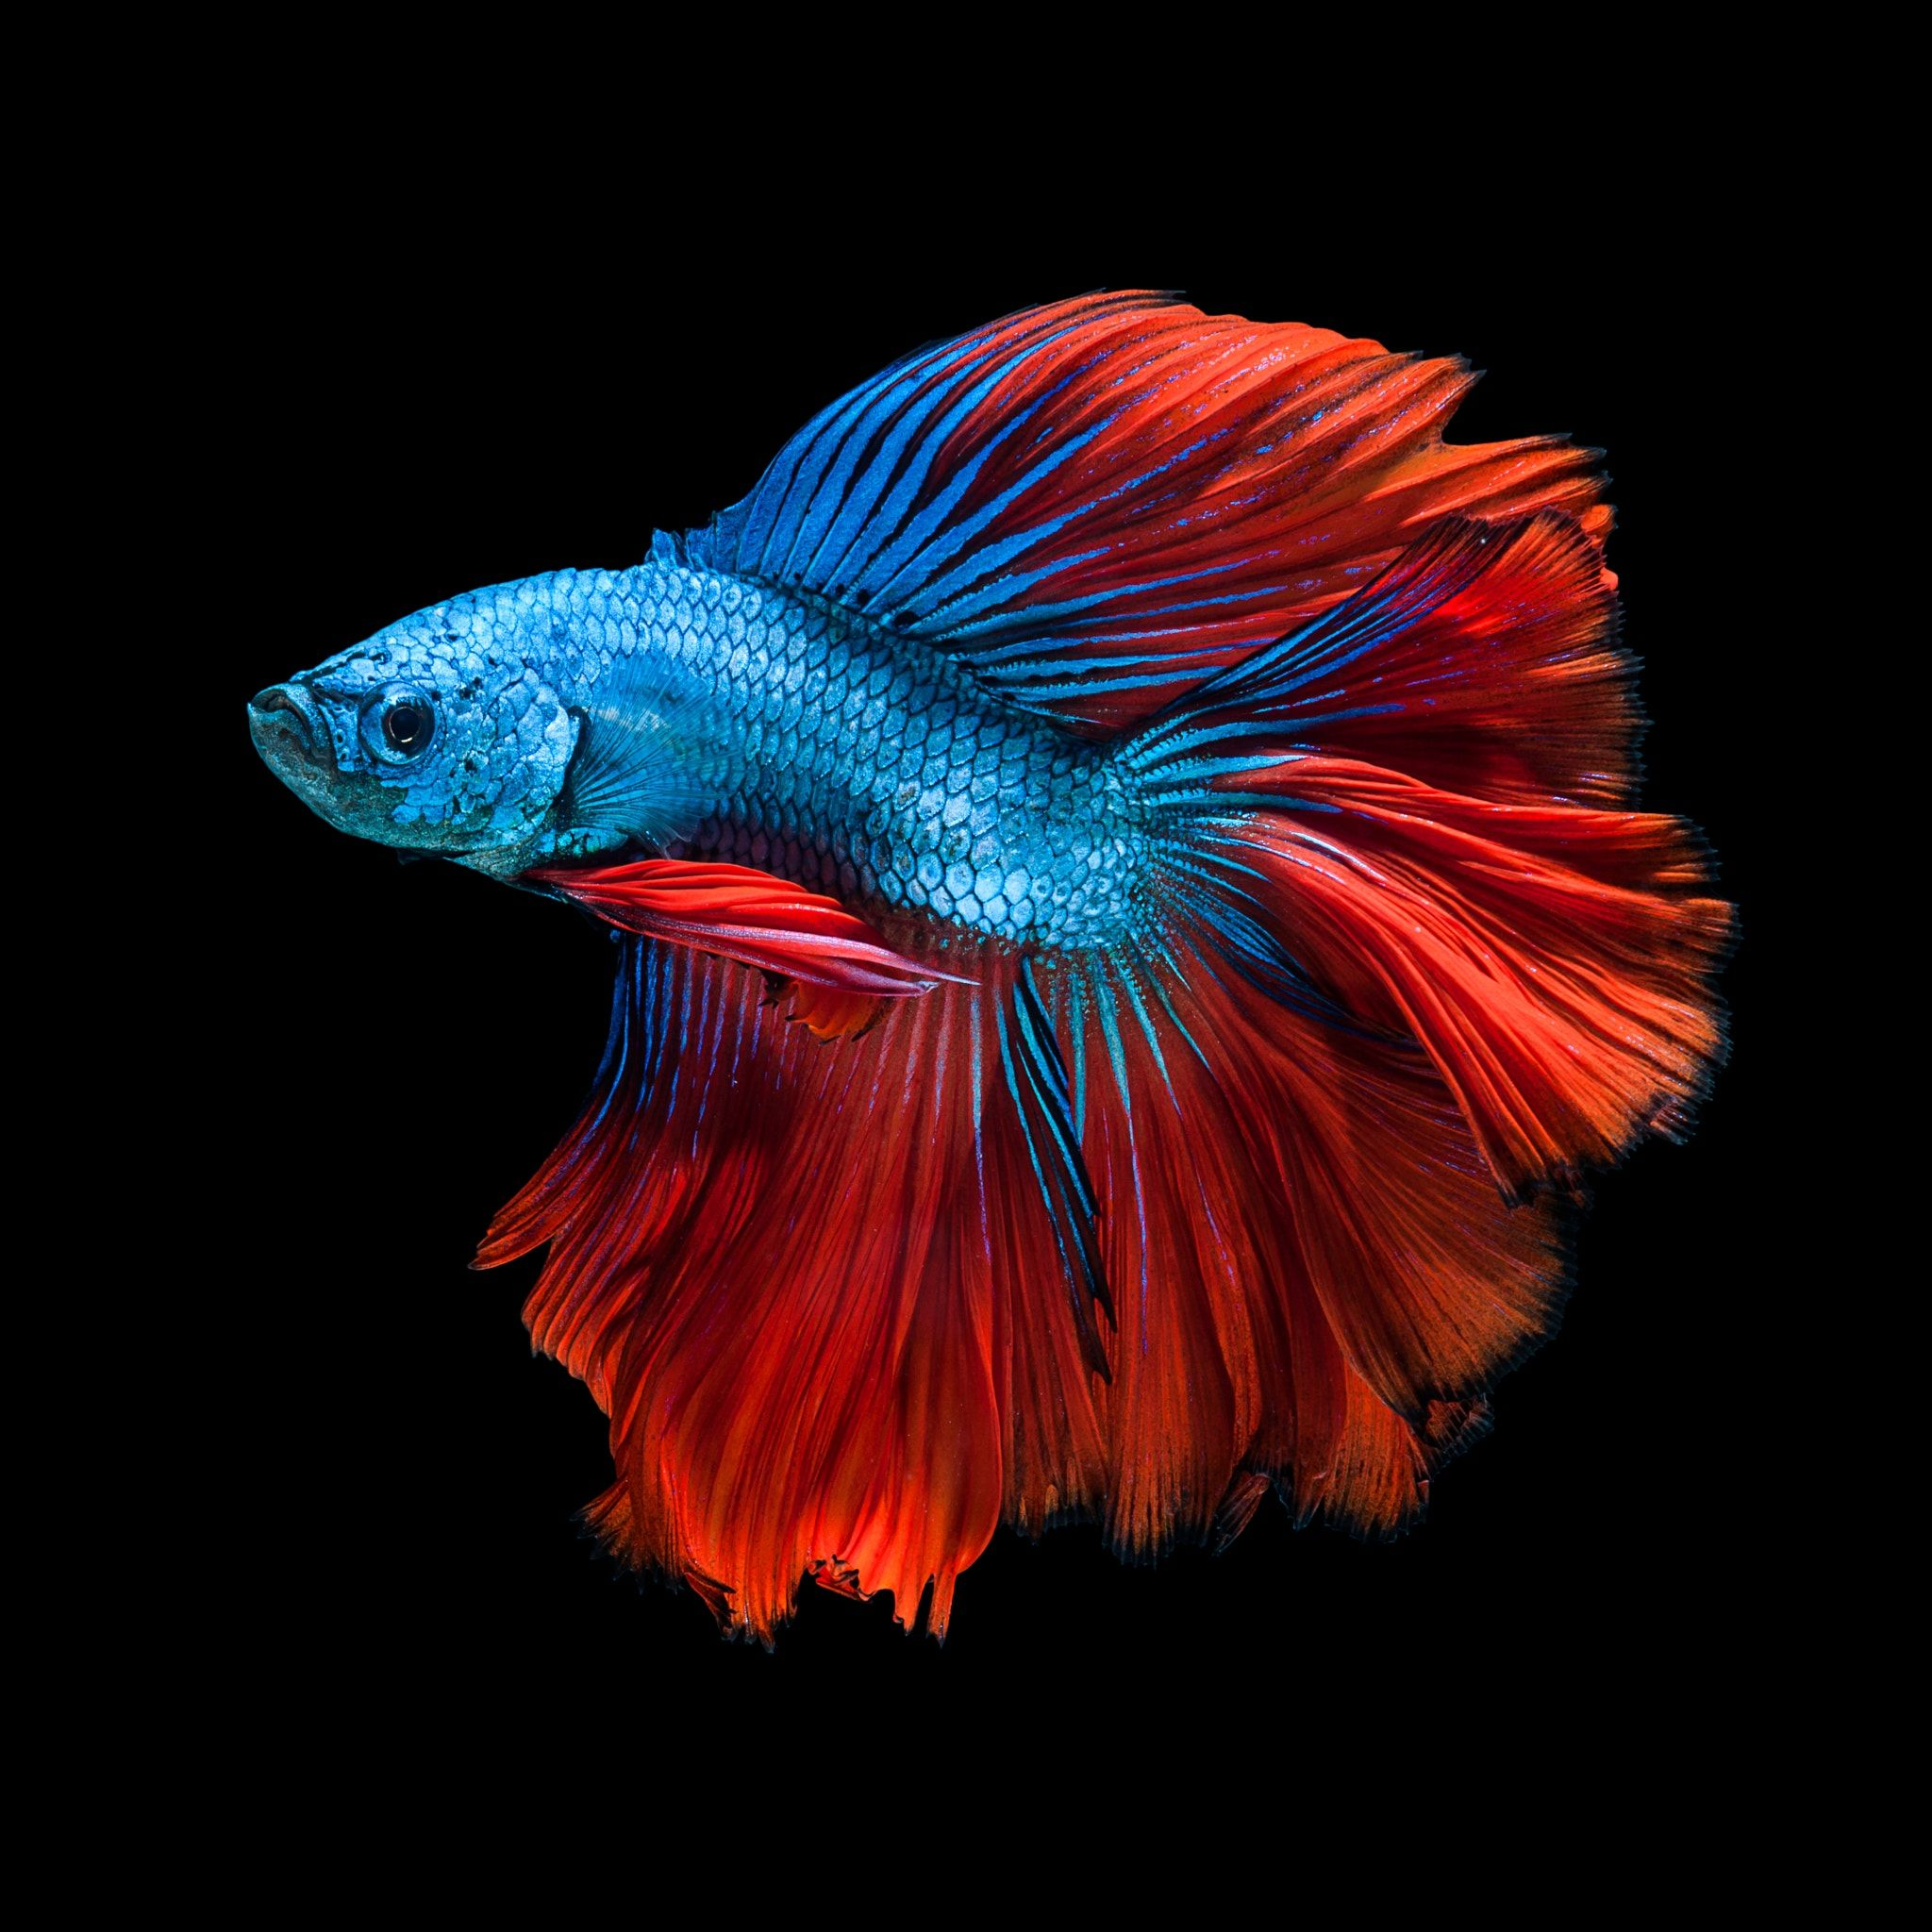 Pin By Farci2998 On Underwater Fish Wallpaper Beautiful Fish Colorful Fish